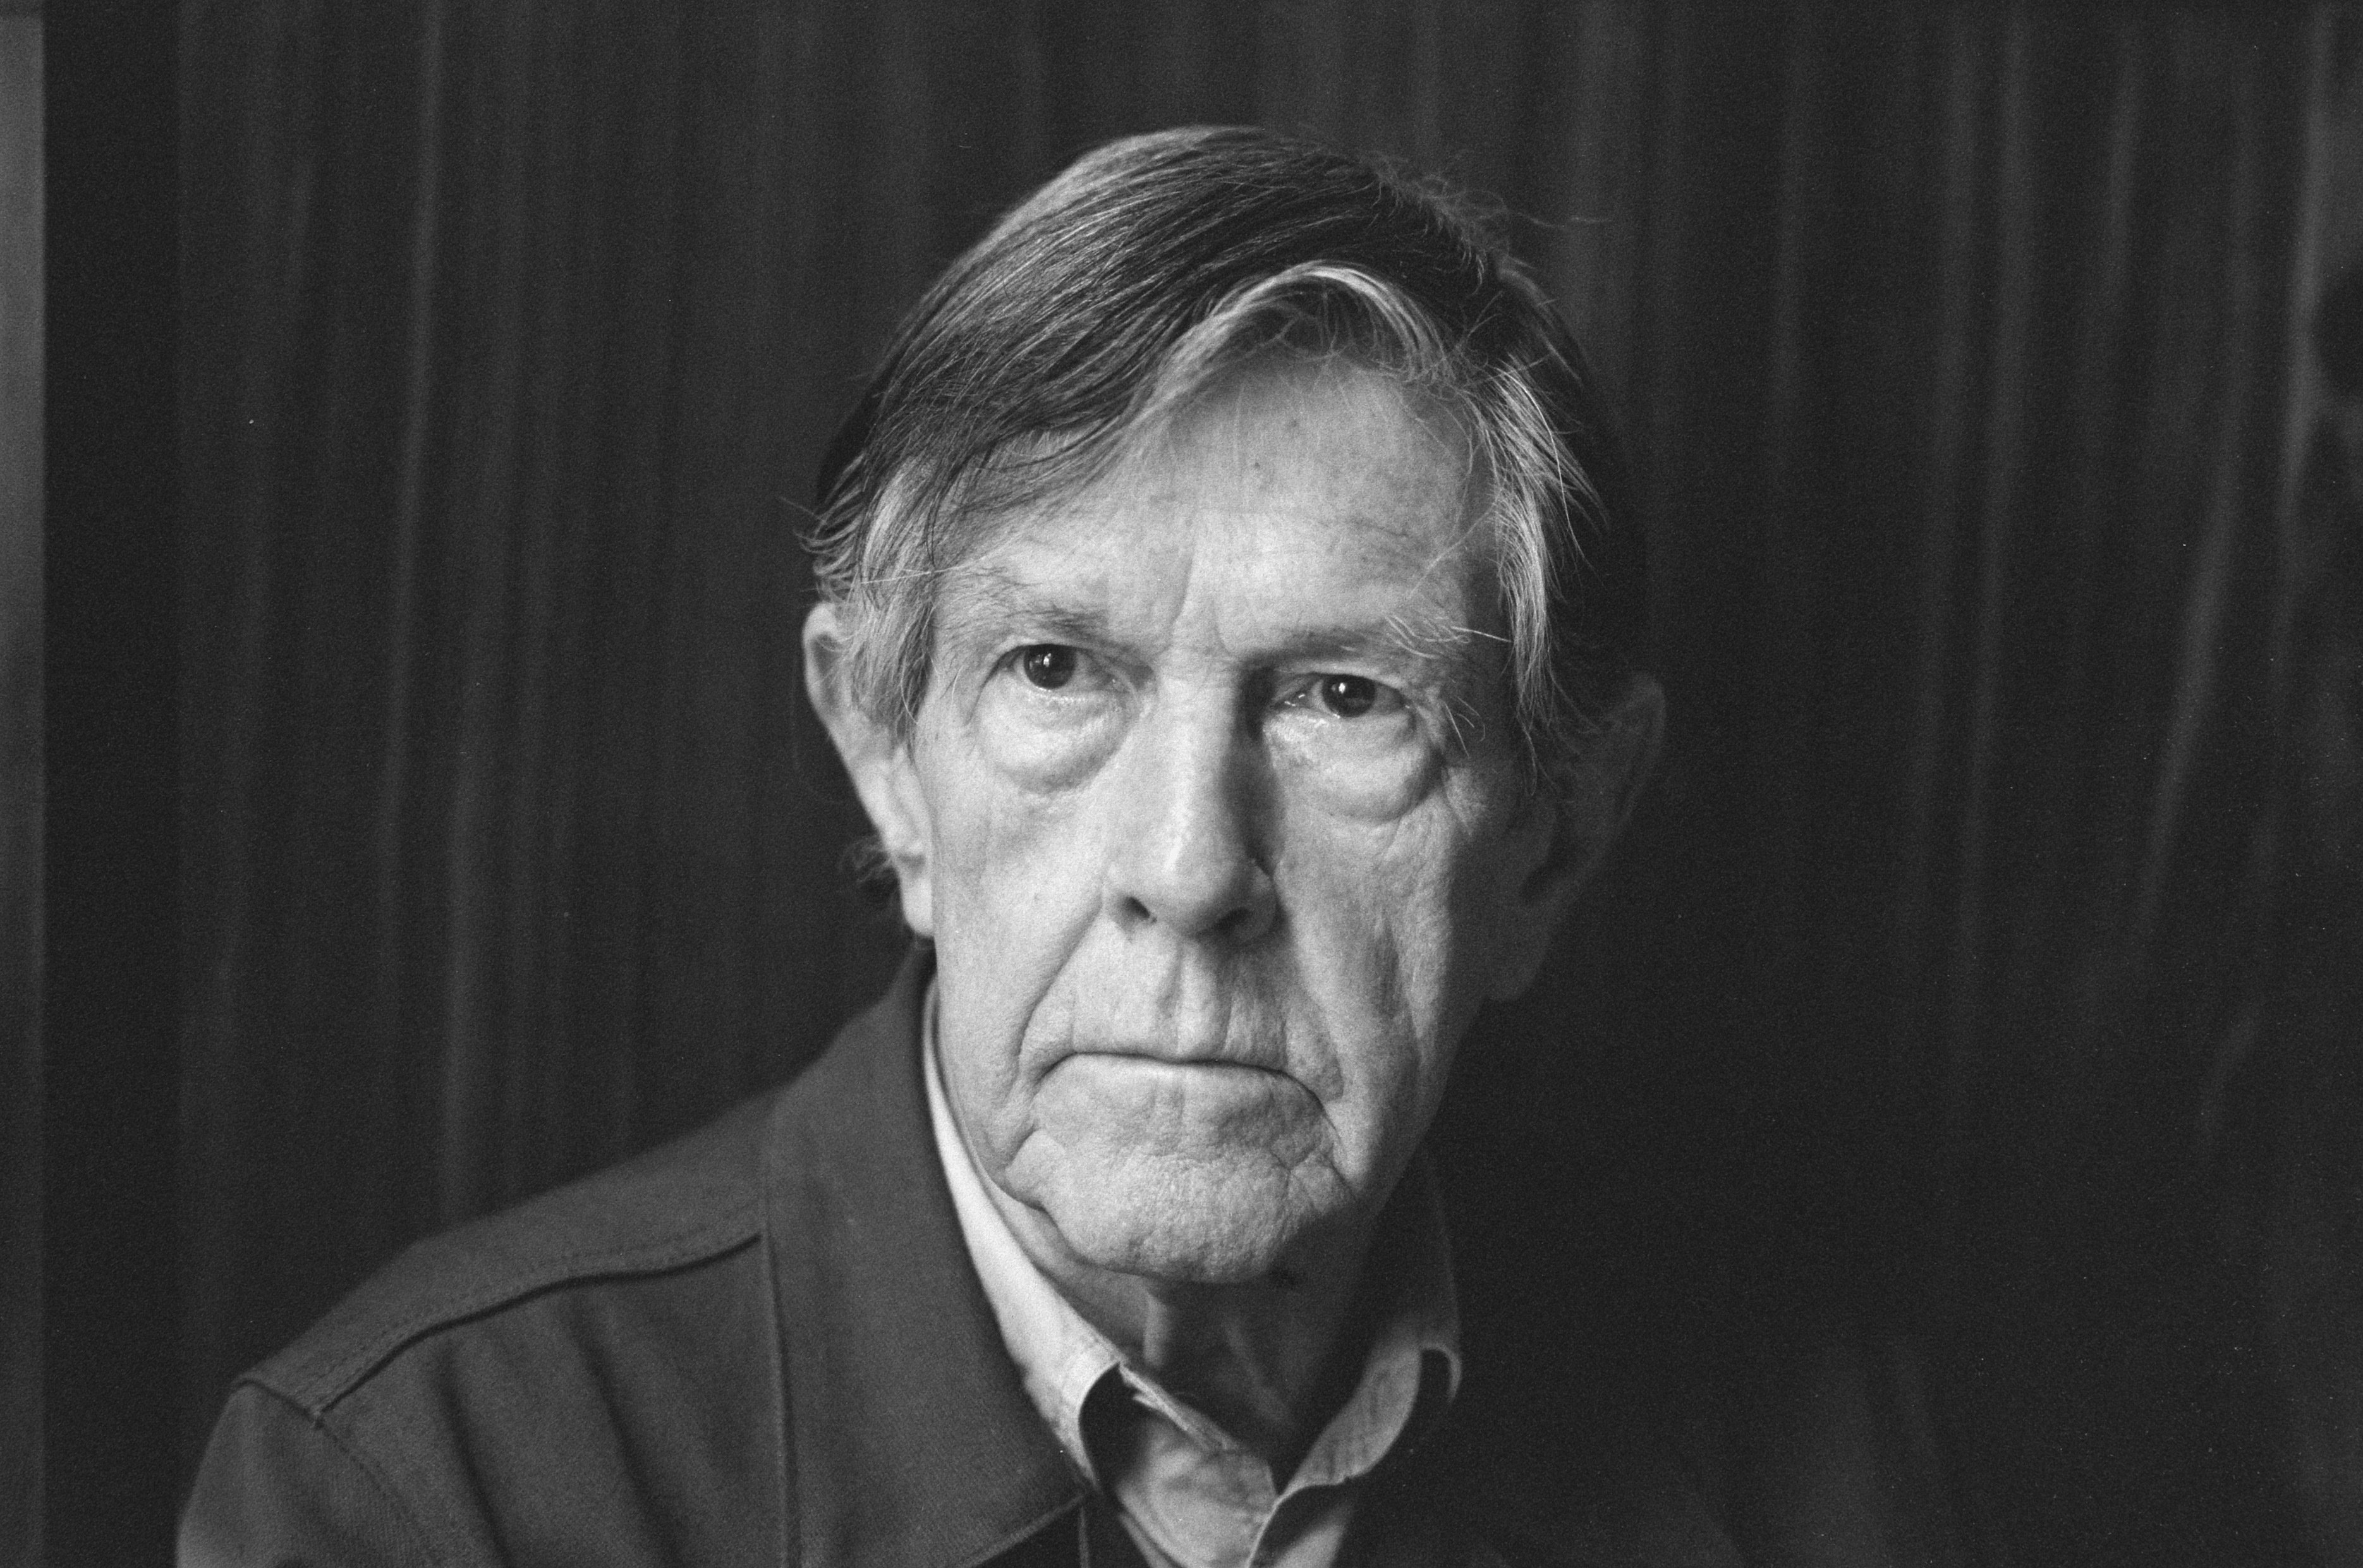 John Cage in 1988. Photograph by Rob Bogaerts. Image courtesy of the Dutch National Archives.